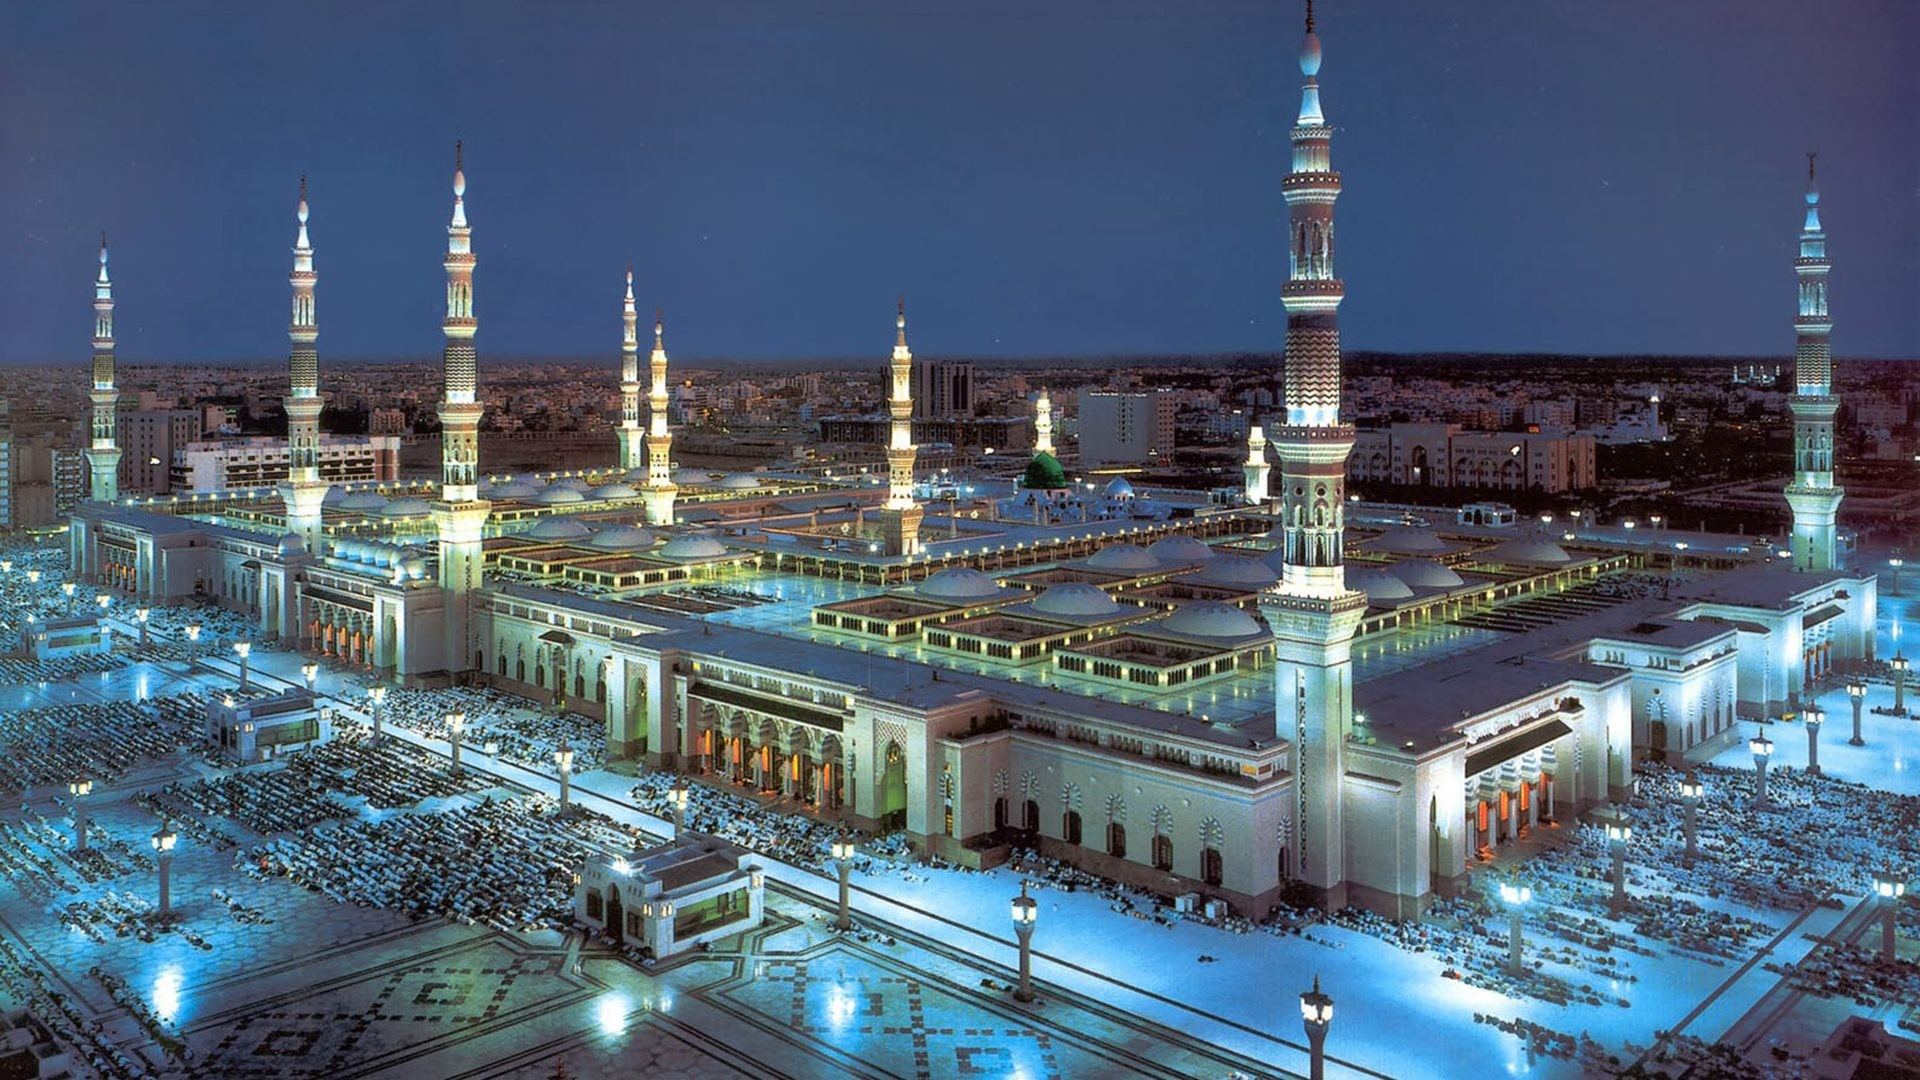 Supreme Hd Wallpaper Masjid Wallpaper 58 Images